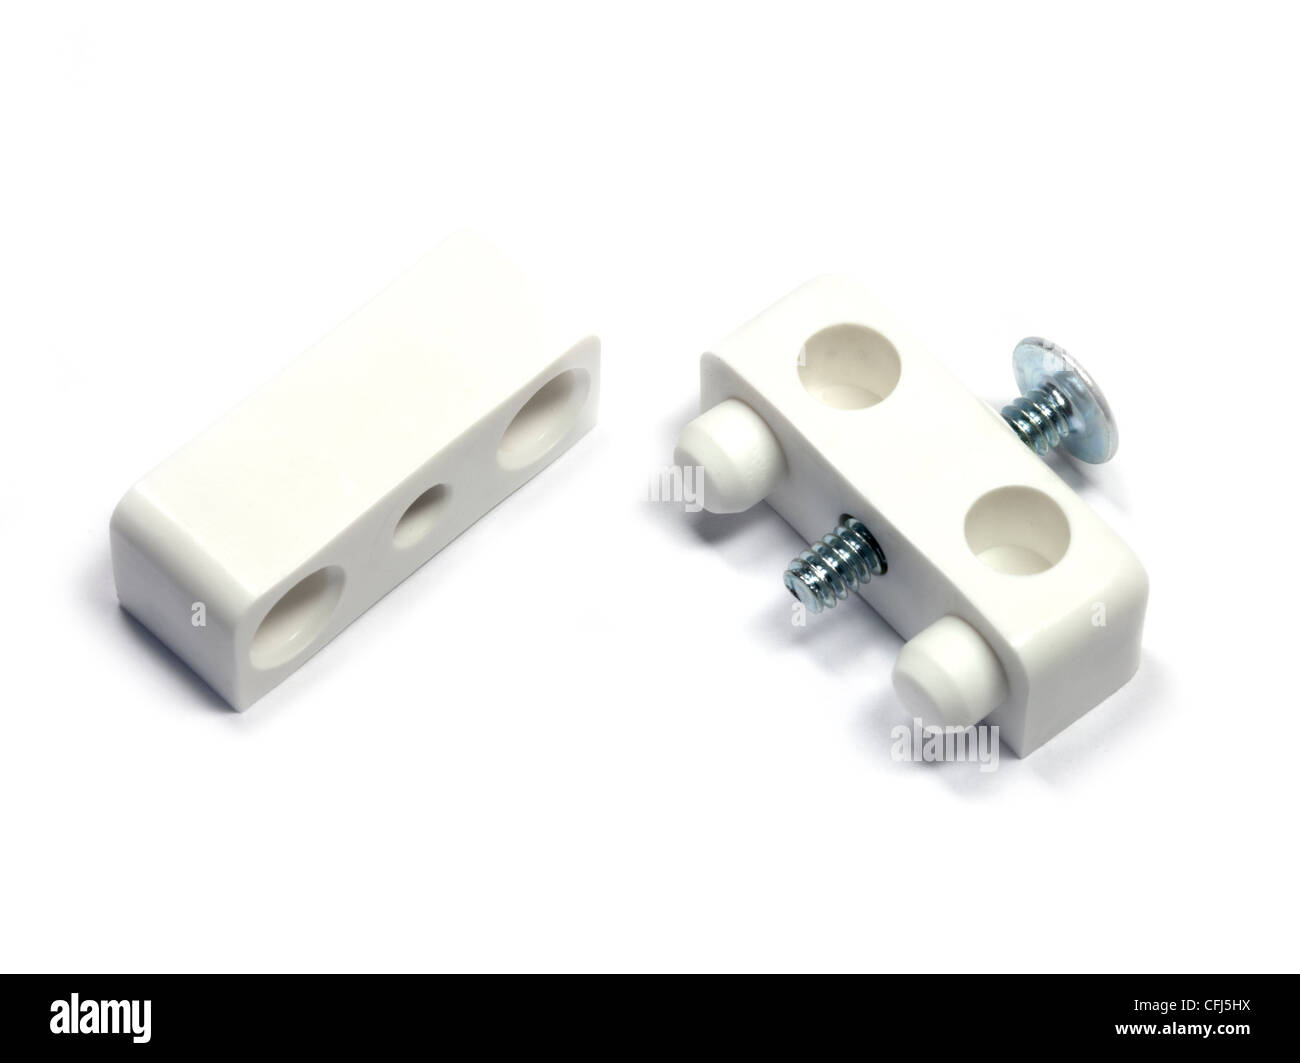 Knock Down Fittings - Stock Image